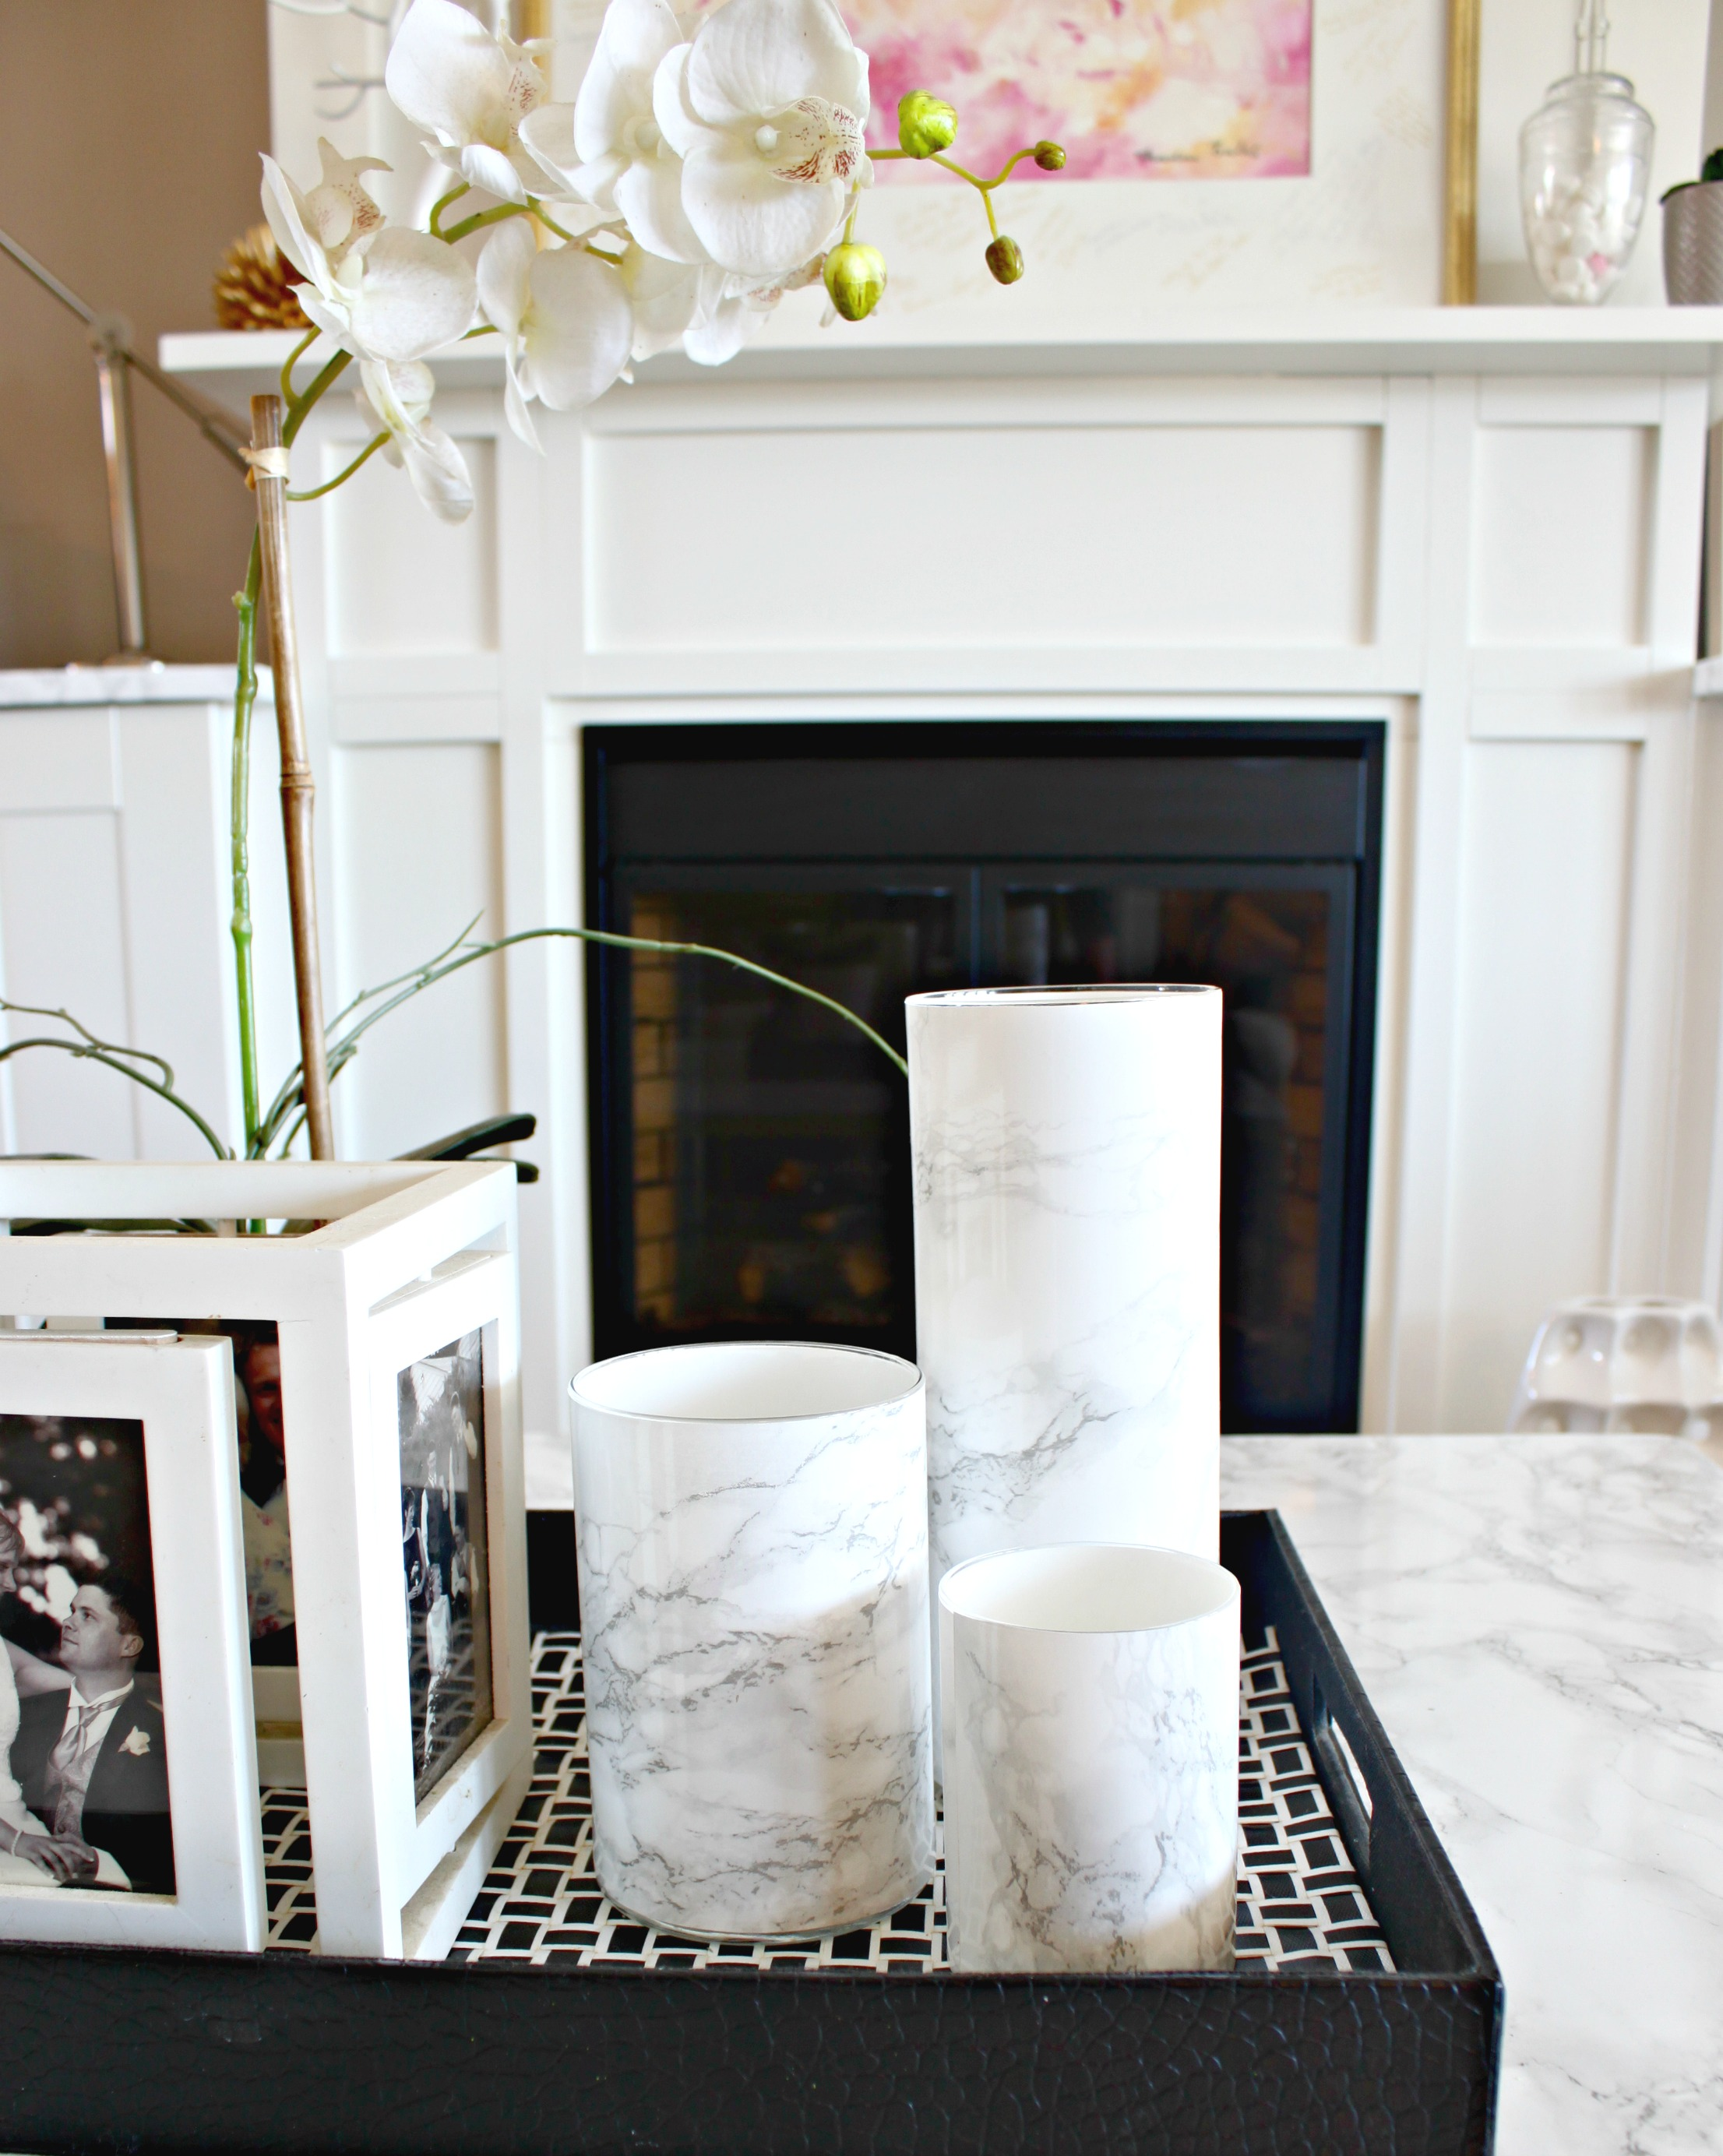 Faux Marble Vase. Find out how to make a fake marble vase using a glass vase and marble contact paper.